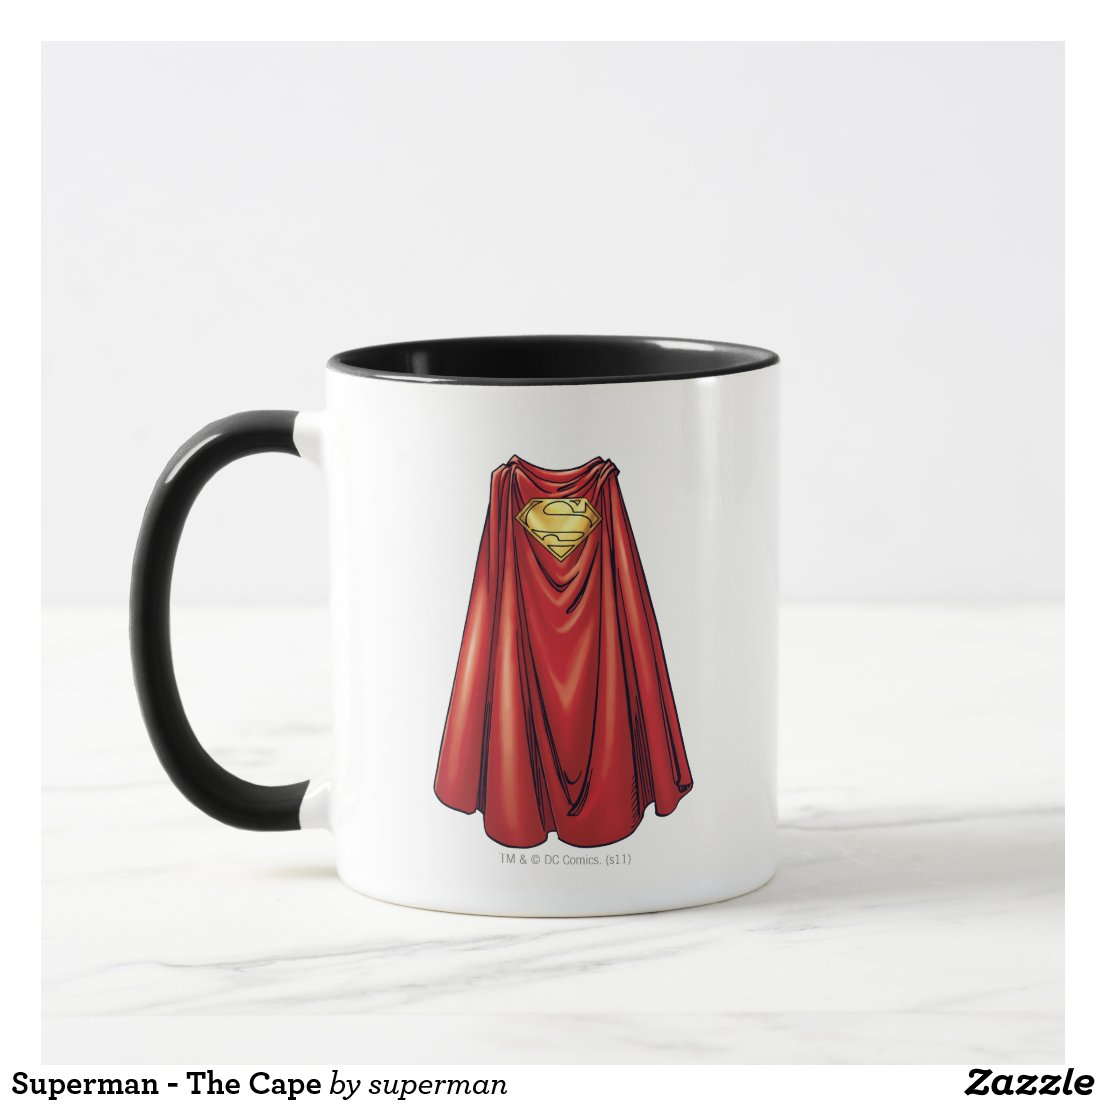 Superman - The Cape